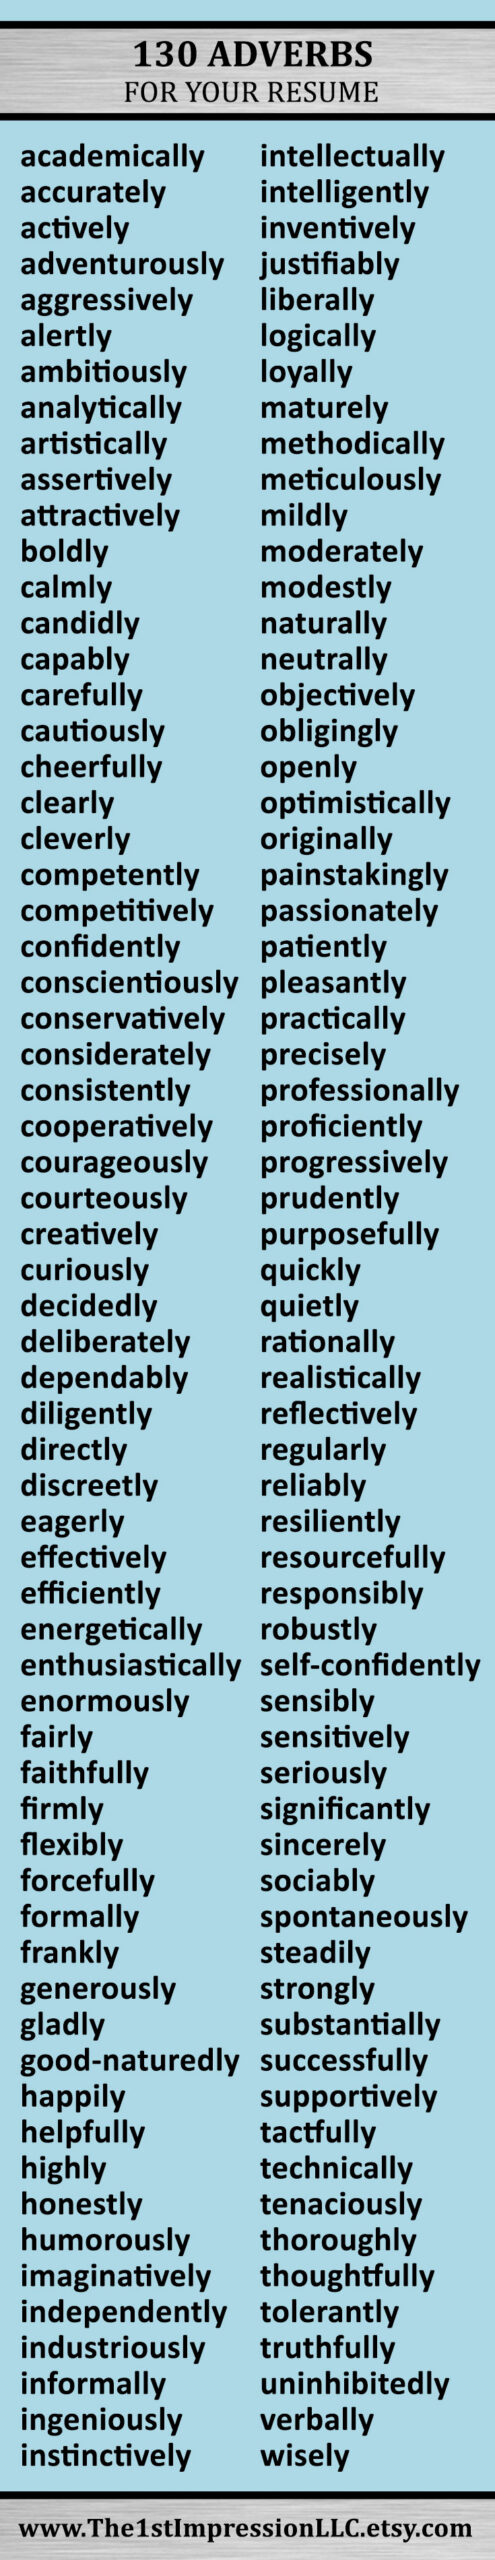 huge of adverbs to help you write your resume job search tips business writing adjectives Resume Resume Adjectives And Adverbs